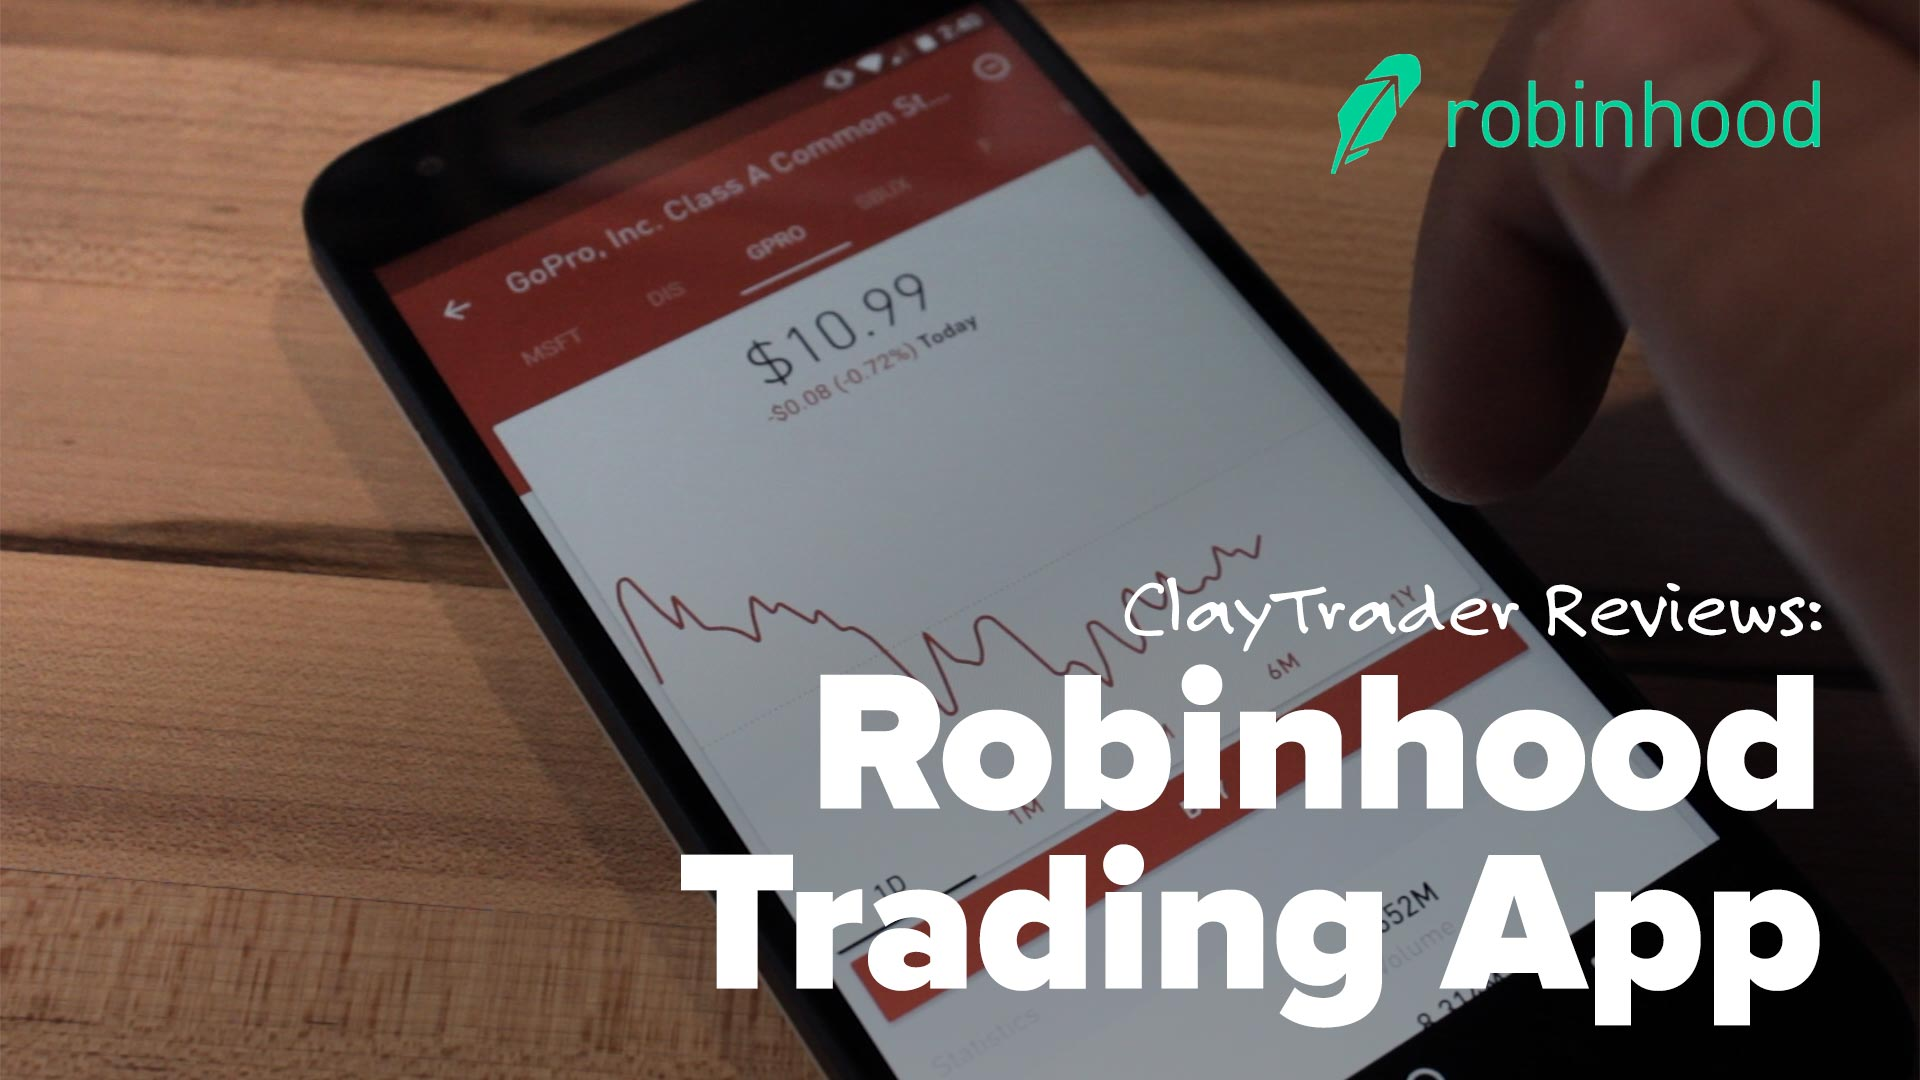 Online Voucher Code 20 Off Robinhood July 2020